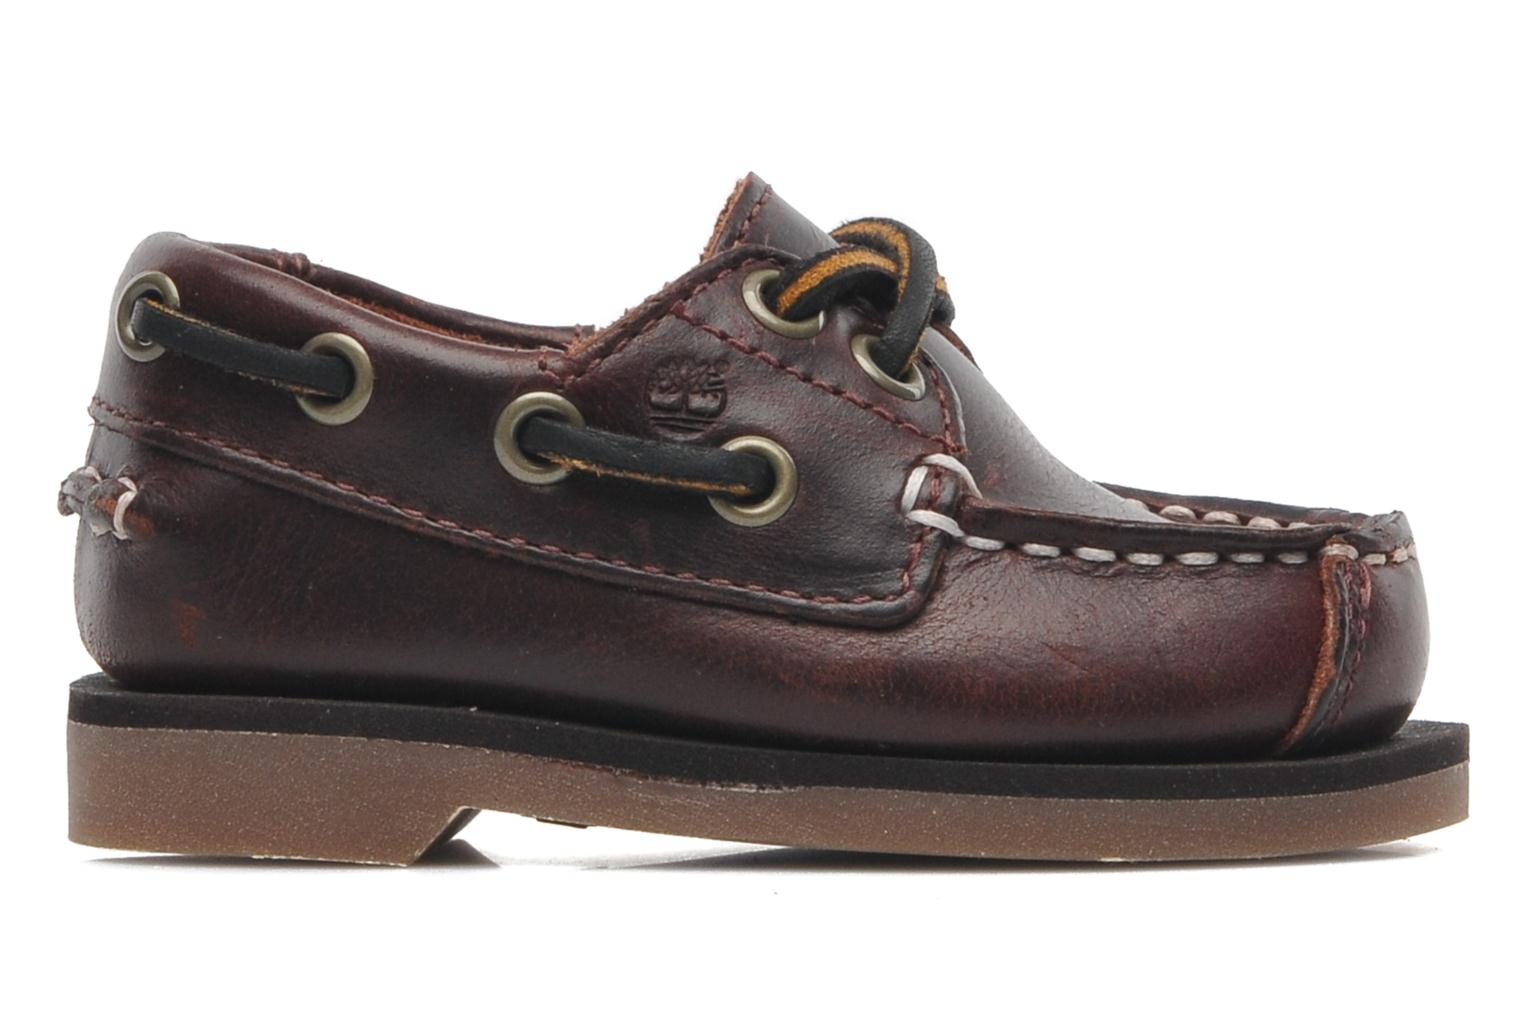 Chaussures à lacets Timberland PeakislL 2I Boat Marron vue derrière